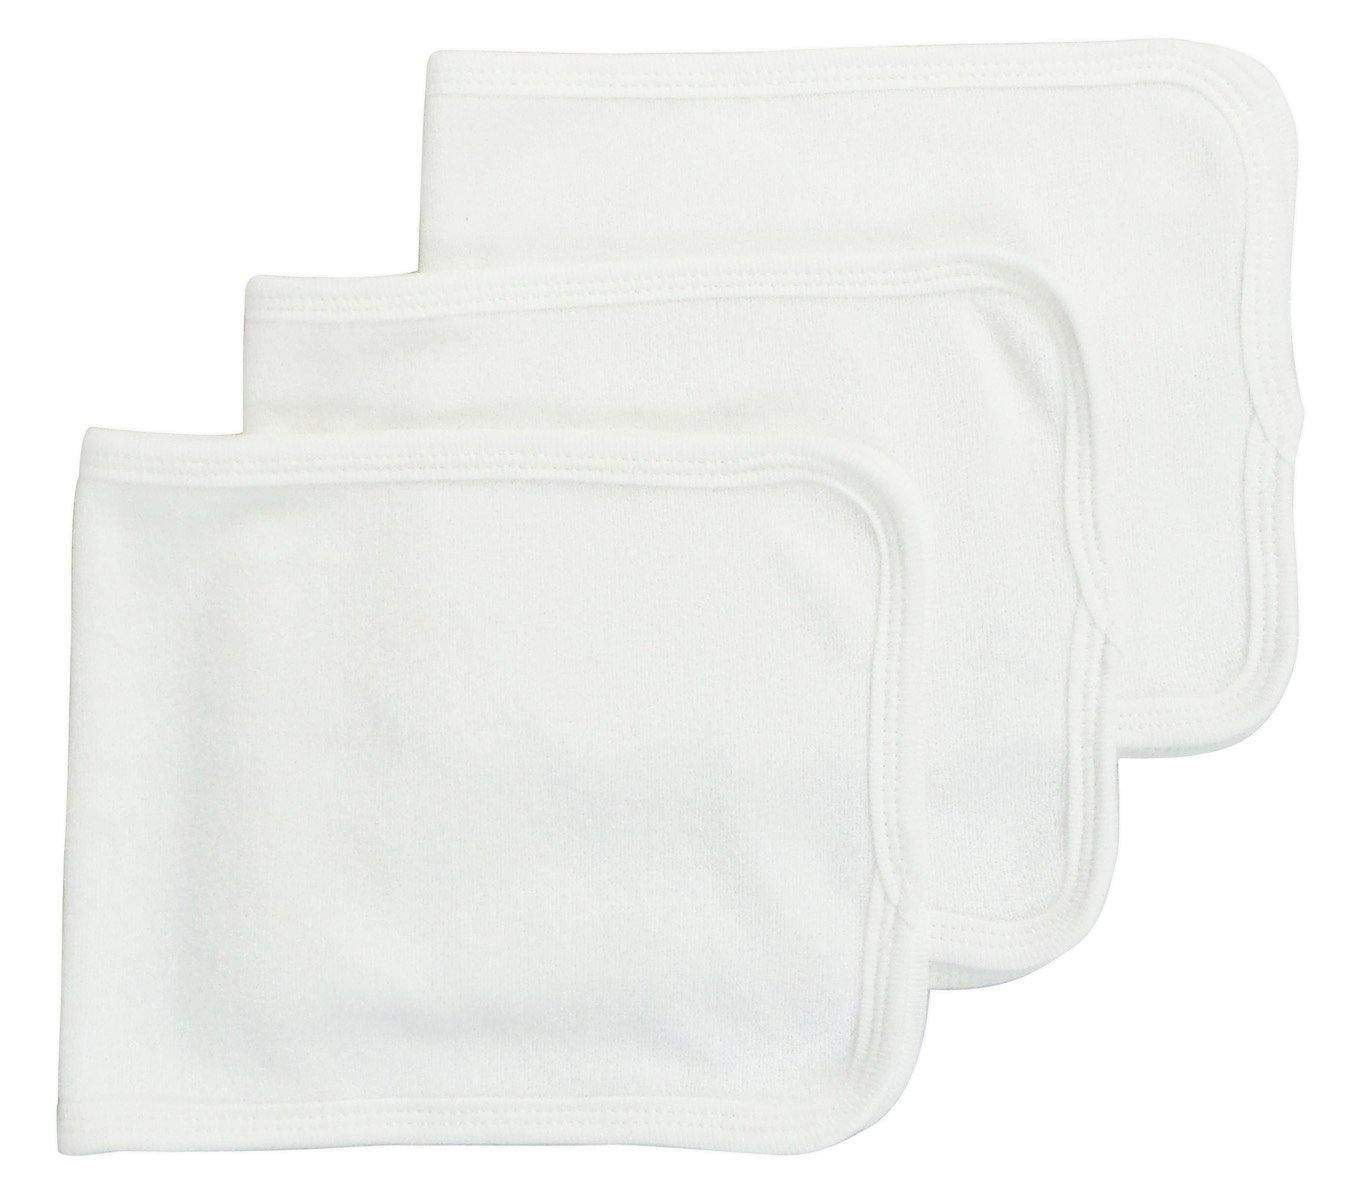 Bambini Baby Burp cloth With Trim (Pack of 3)